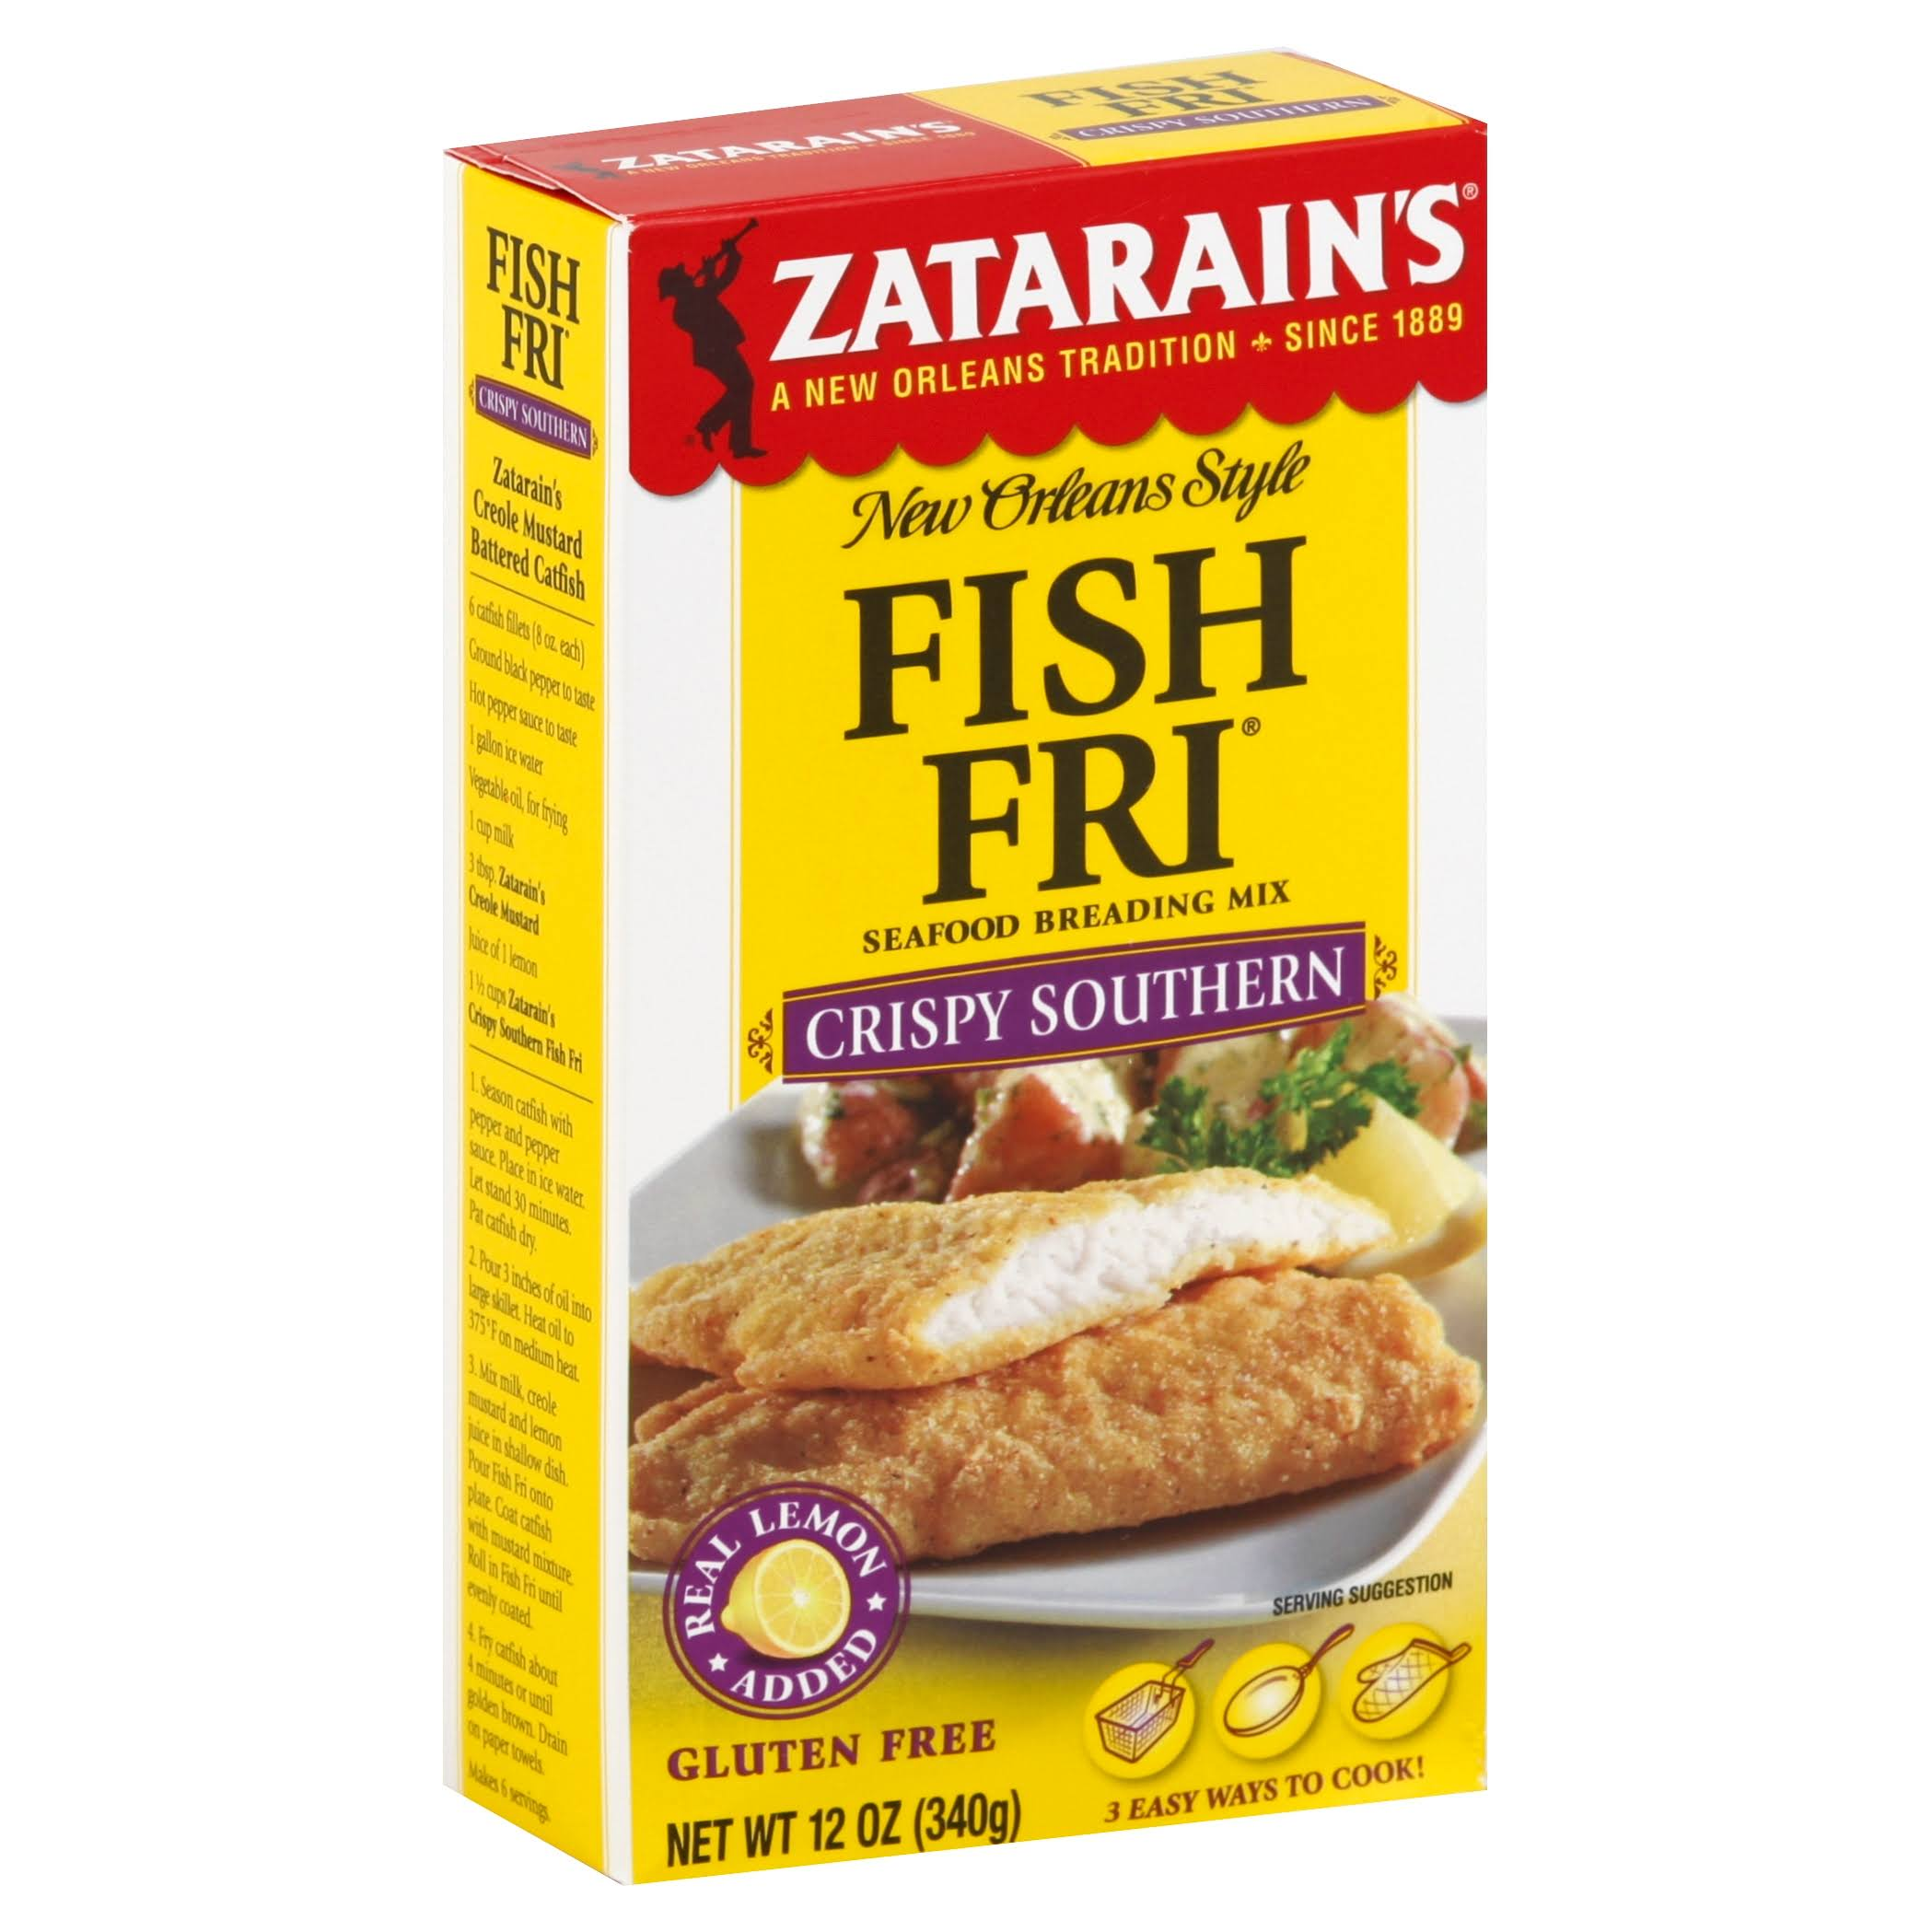 Zatarain's New Orleans Style Fish Fri Seafood Breading Mix - Crispy Southern, 12oz